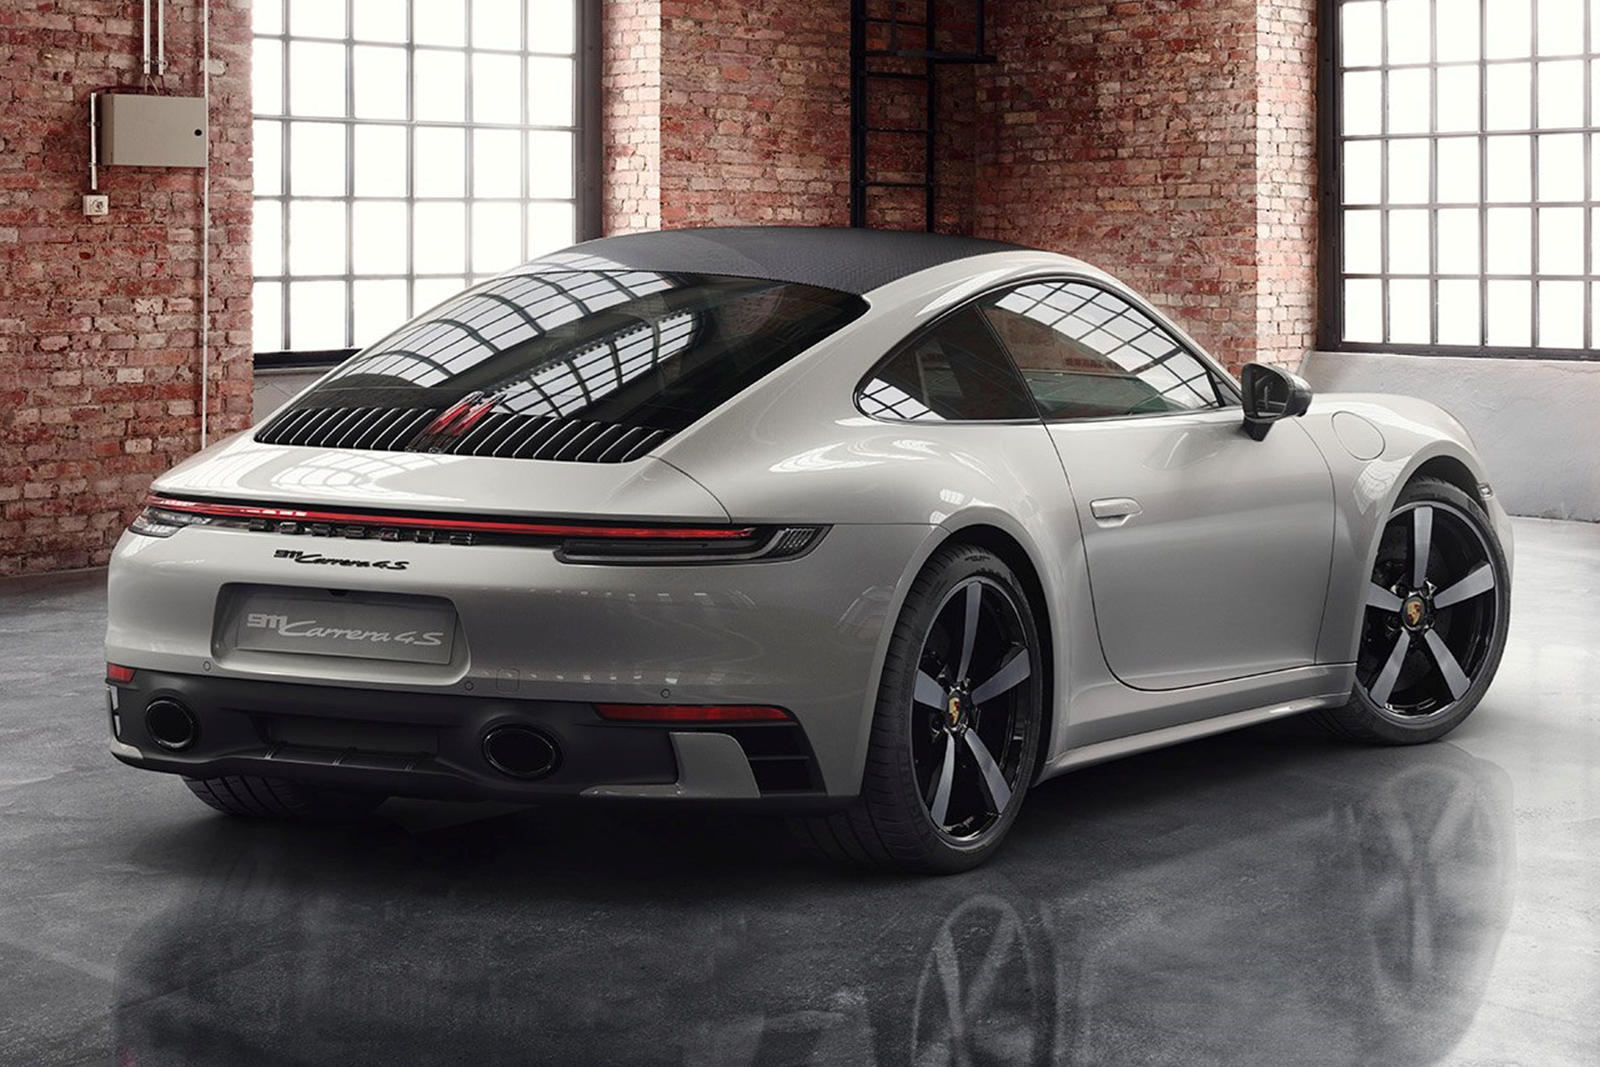 Porsche Exclusive Takes 992 911 To New Heights | CarBuzz